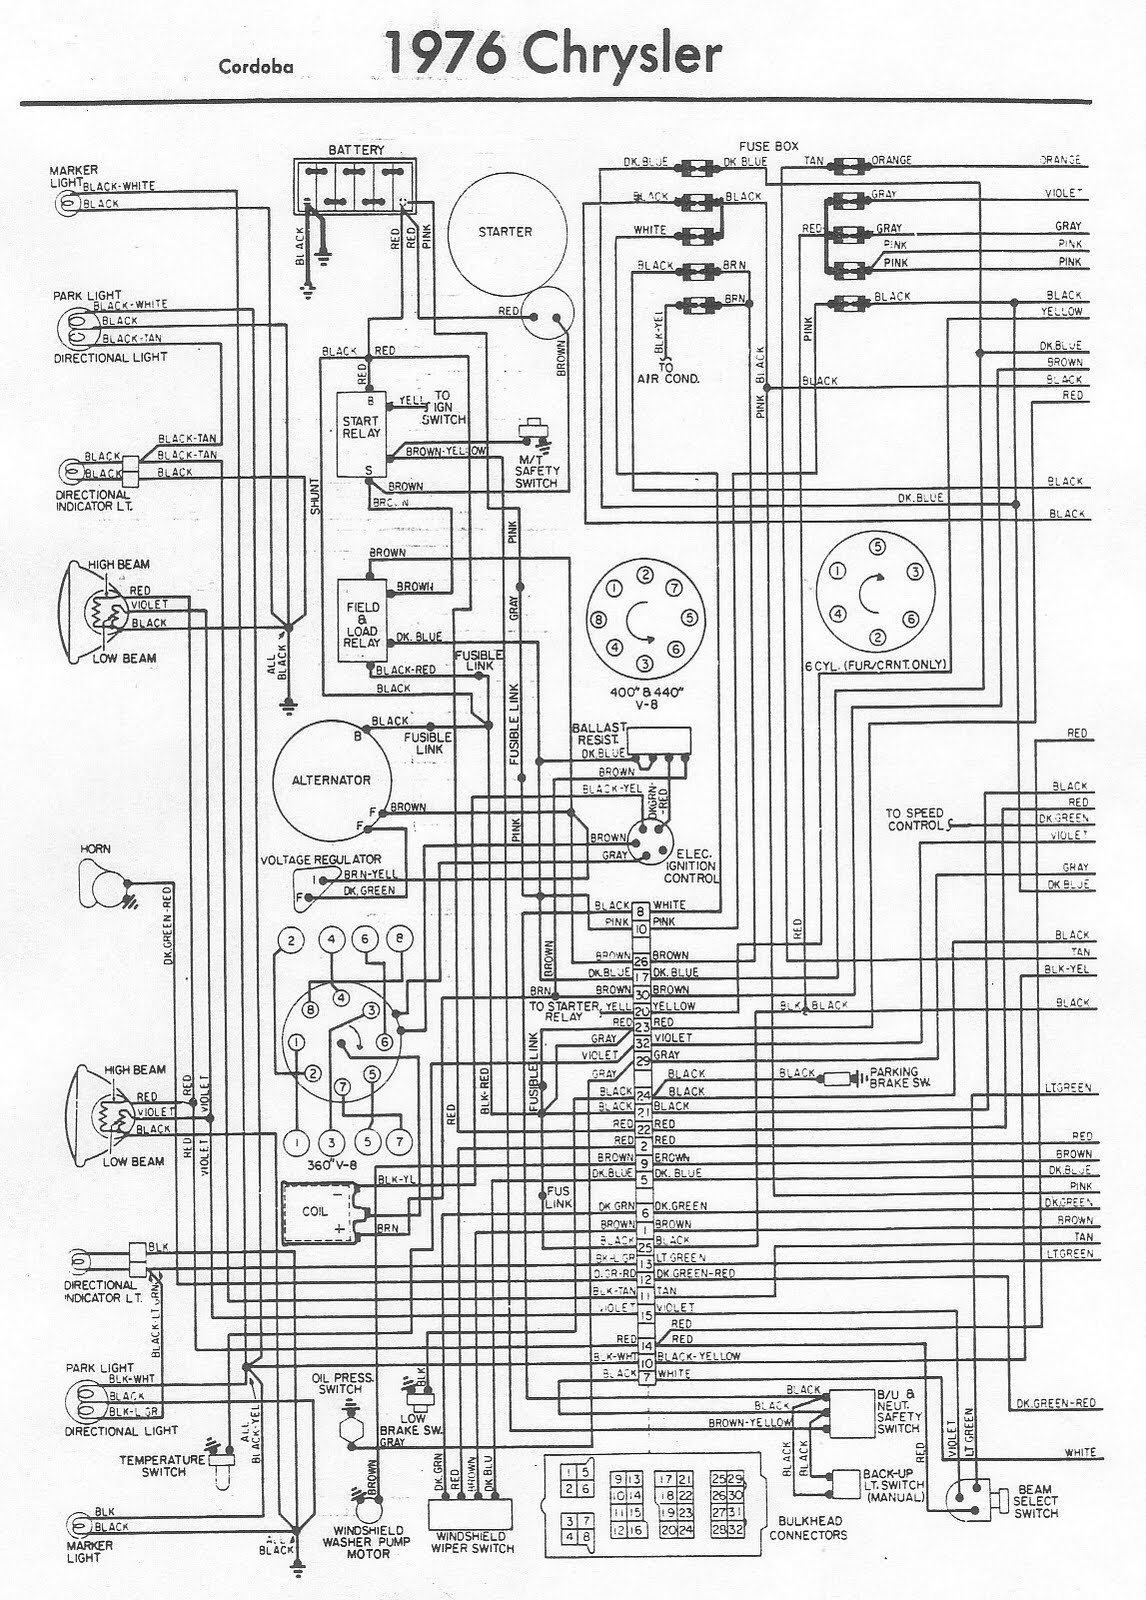 Free Auto Wiring Diagram  1976 Chrysler Cordoba Engine Compartment Wiring Diagram